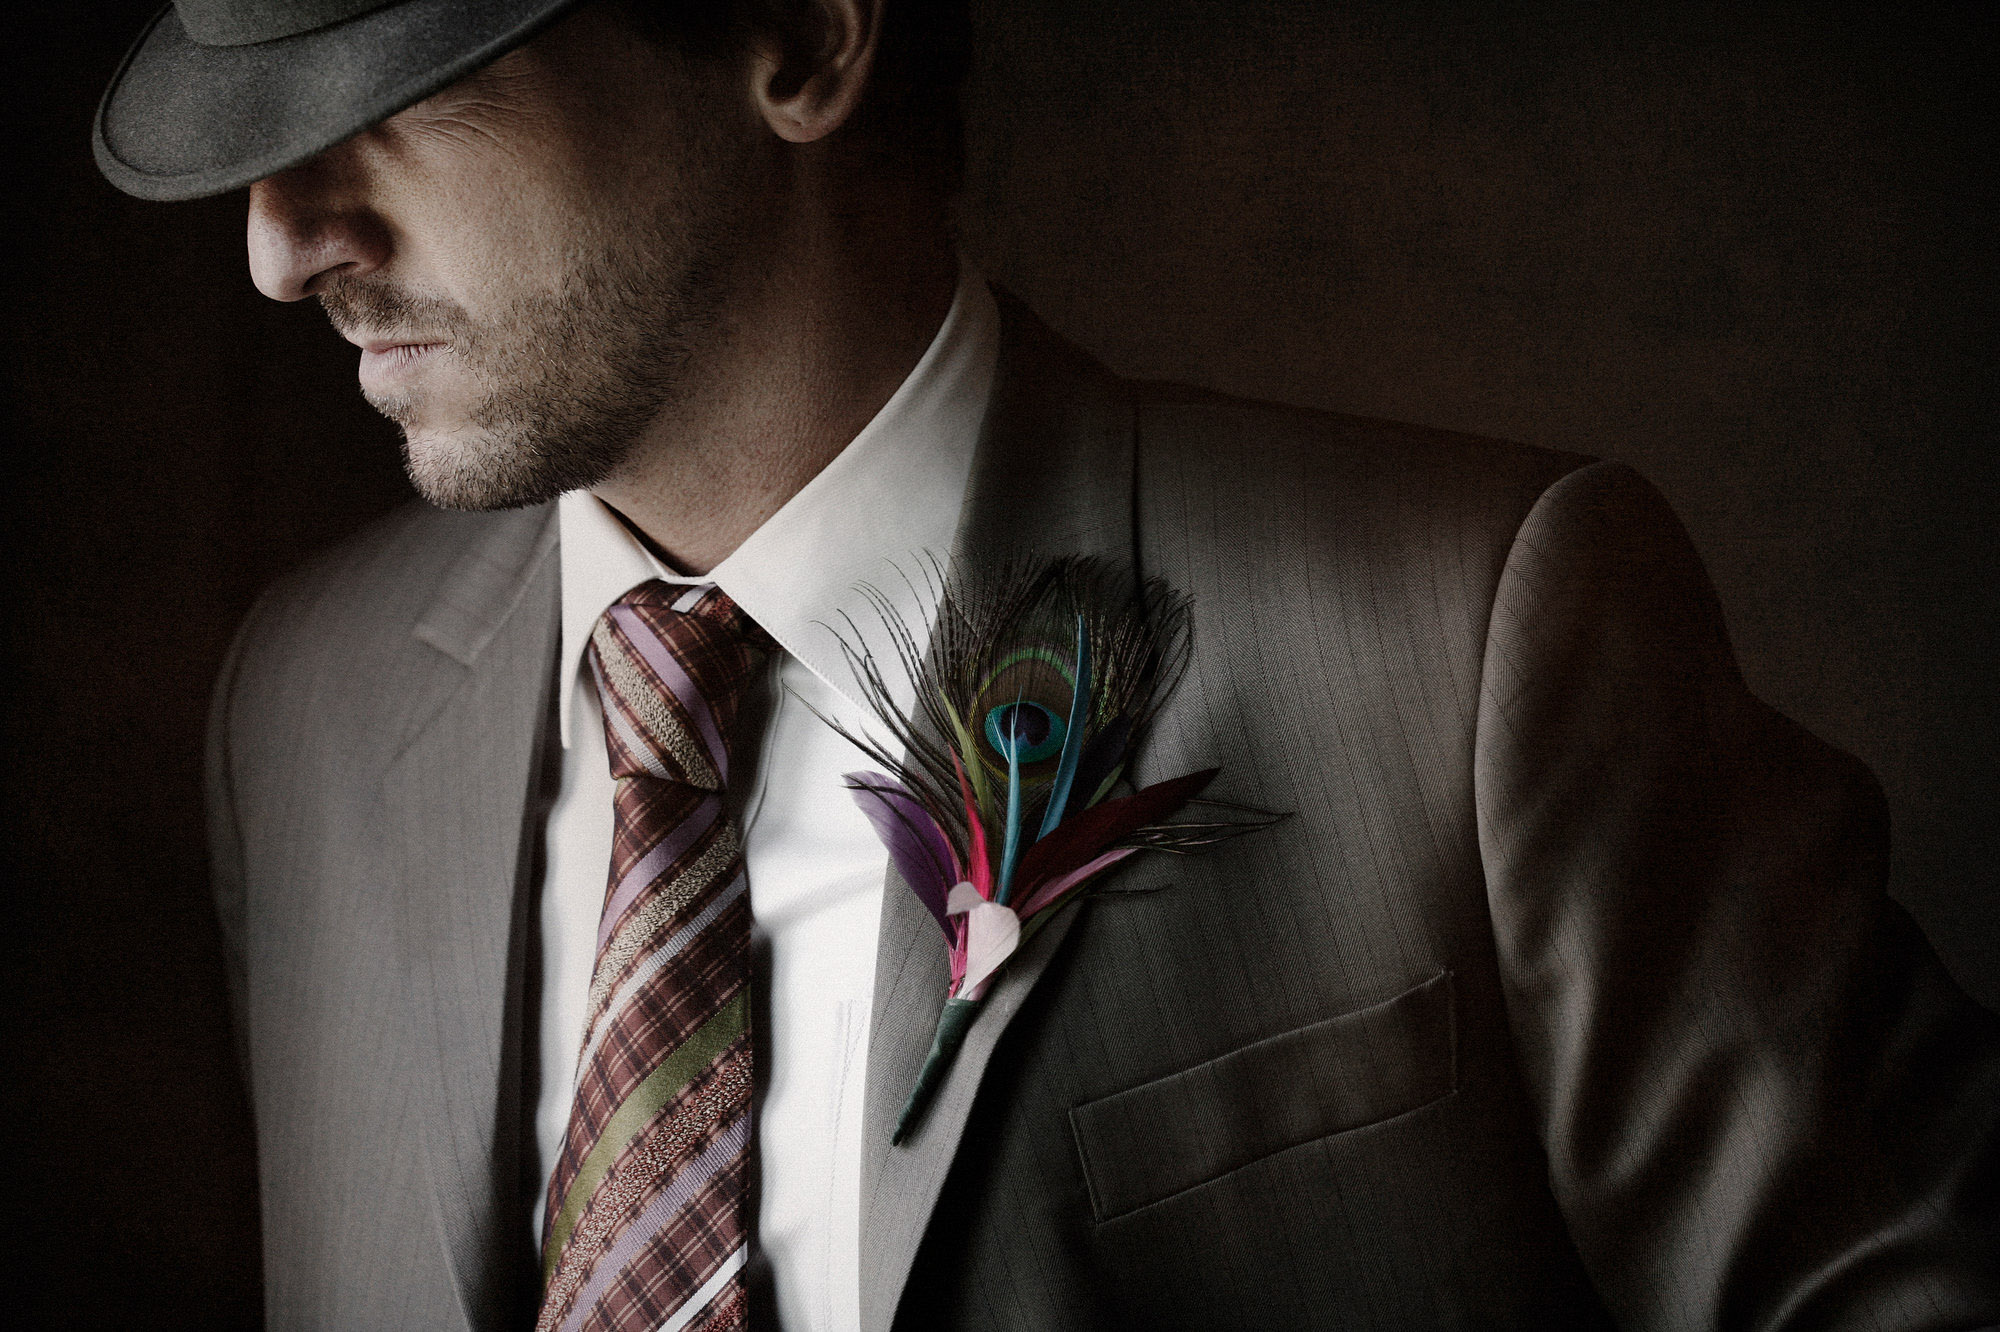 Peacock feather boutonniere - photo by Jerry Ghionis - Las Vegas wedding photographer